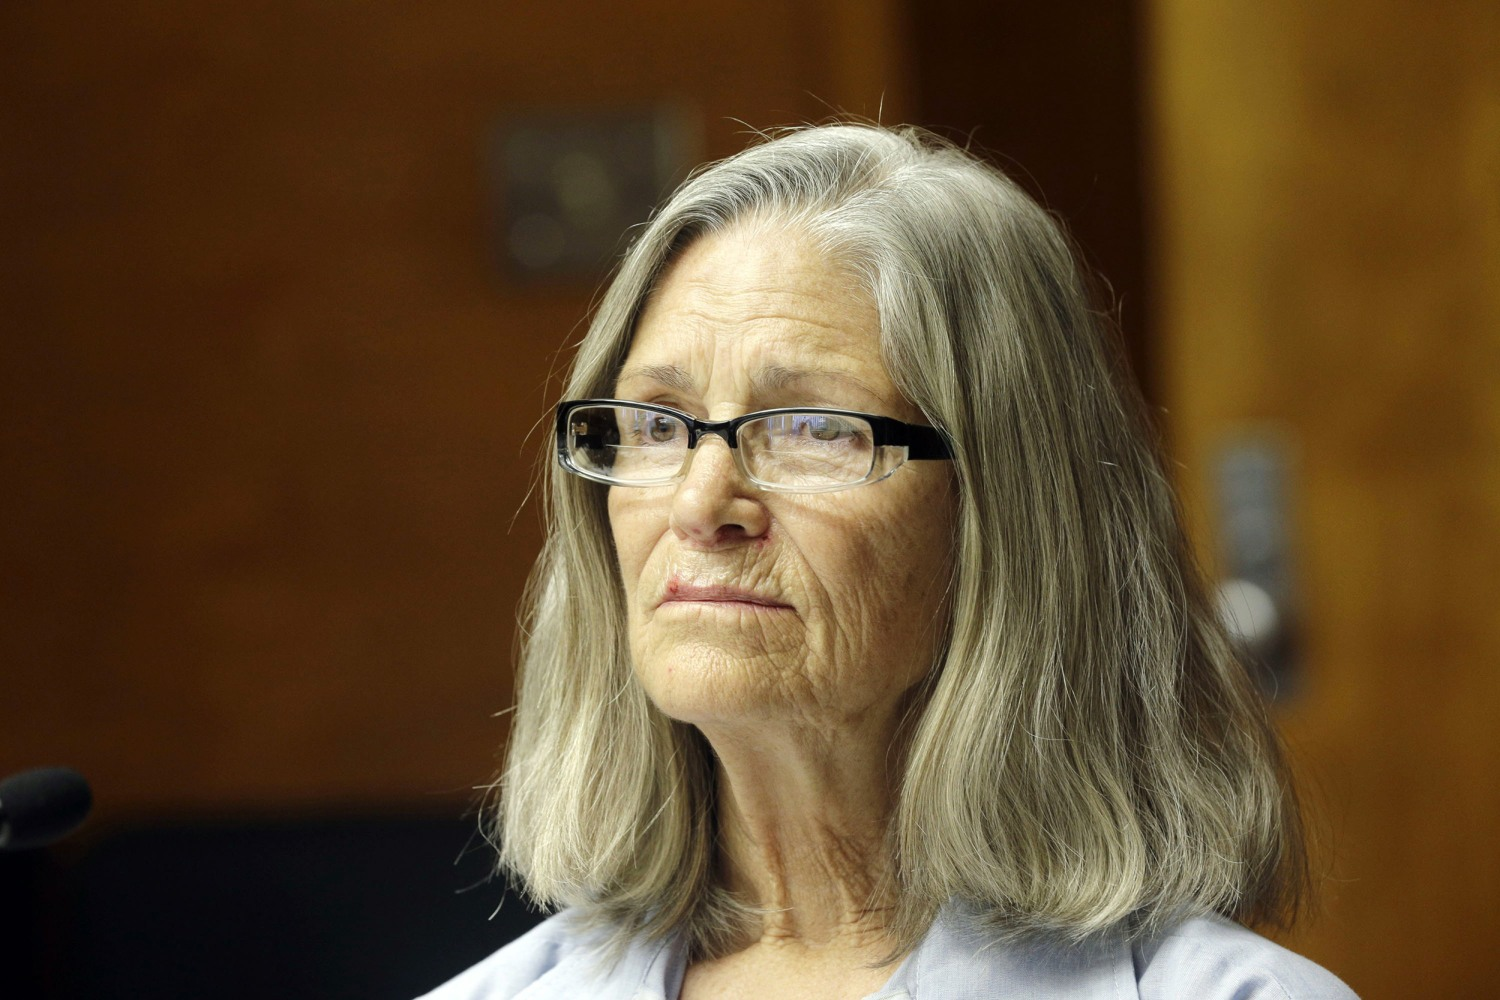 Former Charles Manson follower Leslie Van Houten is seen during a hearing before the California Board of Parole Hearings at the California Institution for Women in Chino, Calif., Thursday, April 14, 2016. Nick Ut / AP